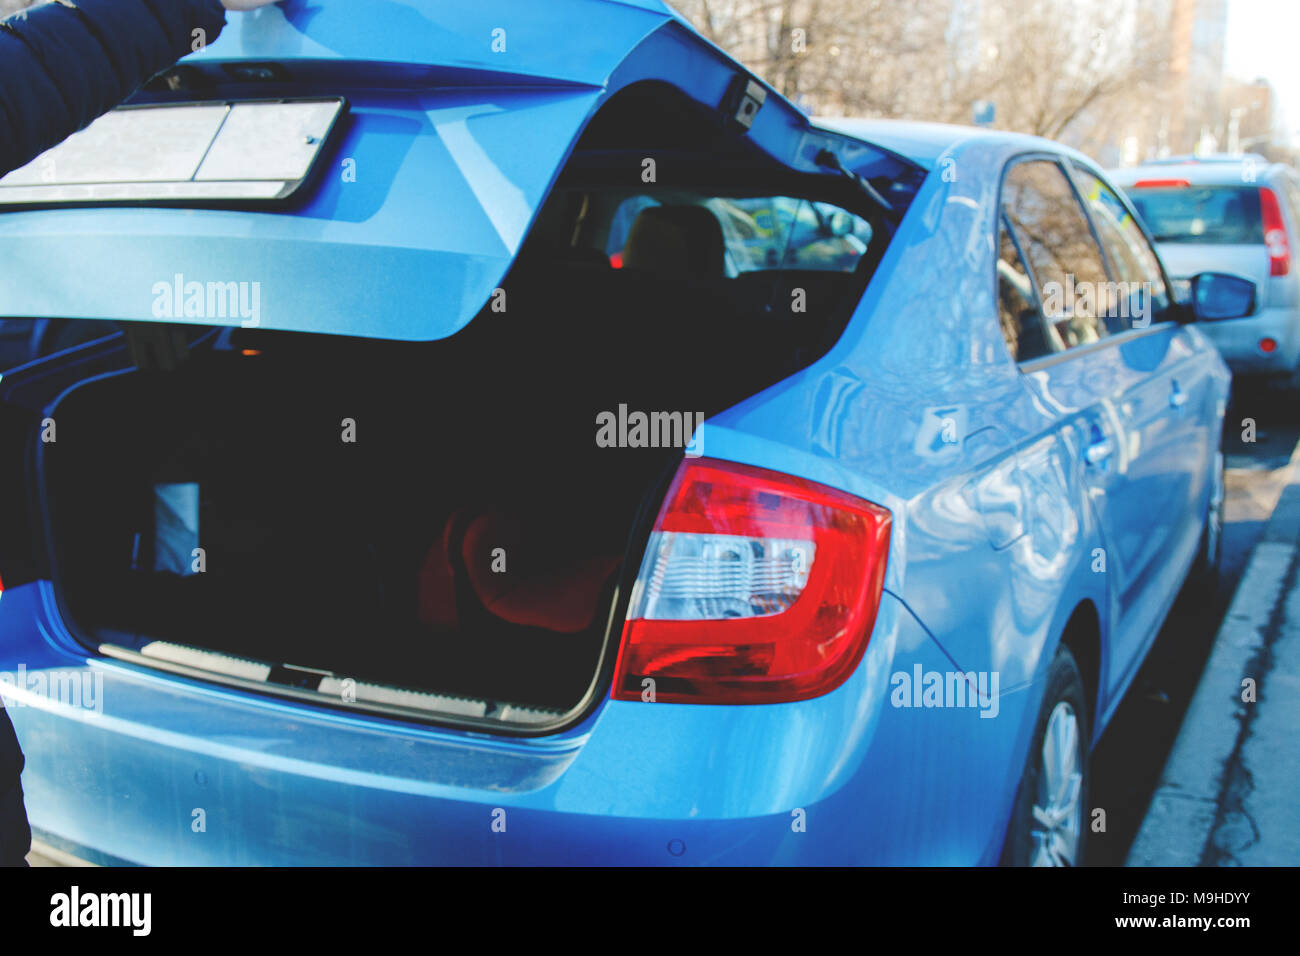 open trunk of the blue car in which the spare child seat is stored Stock Photo